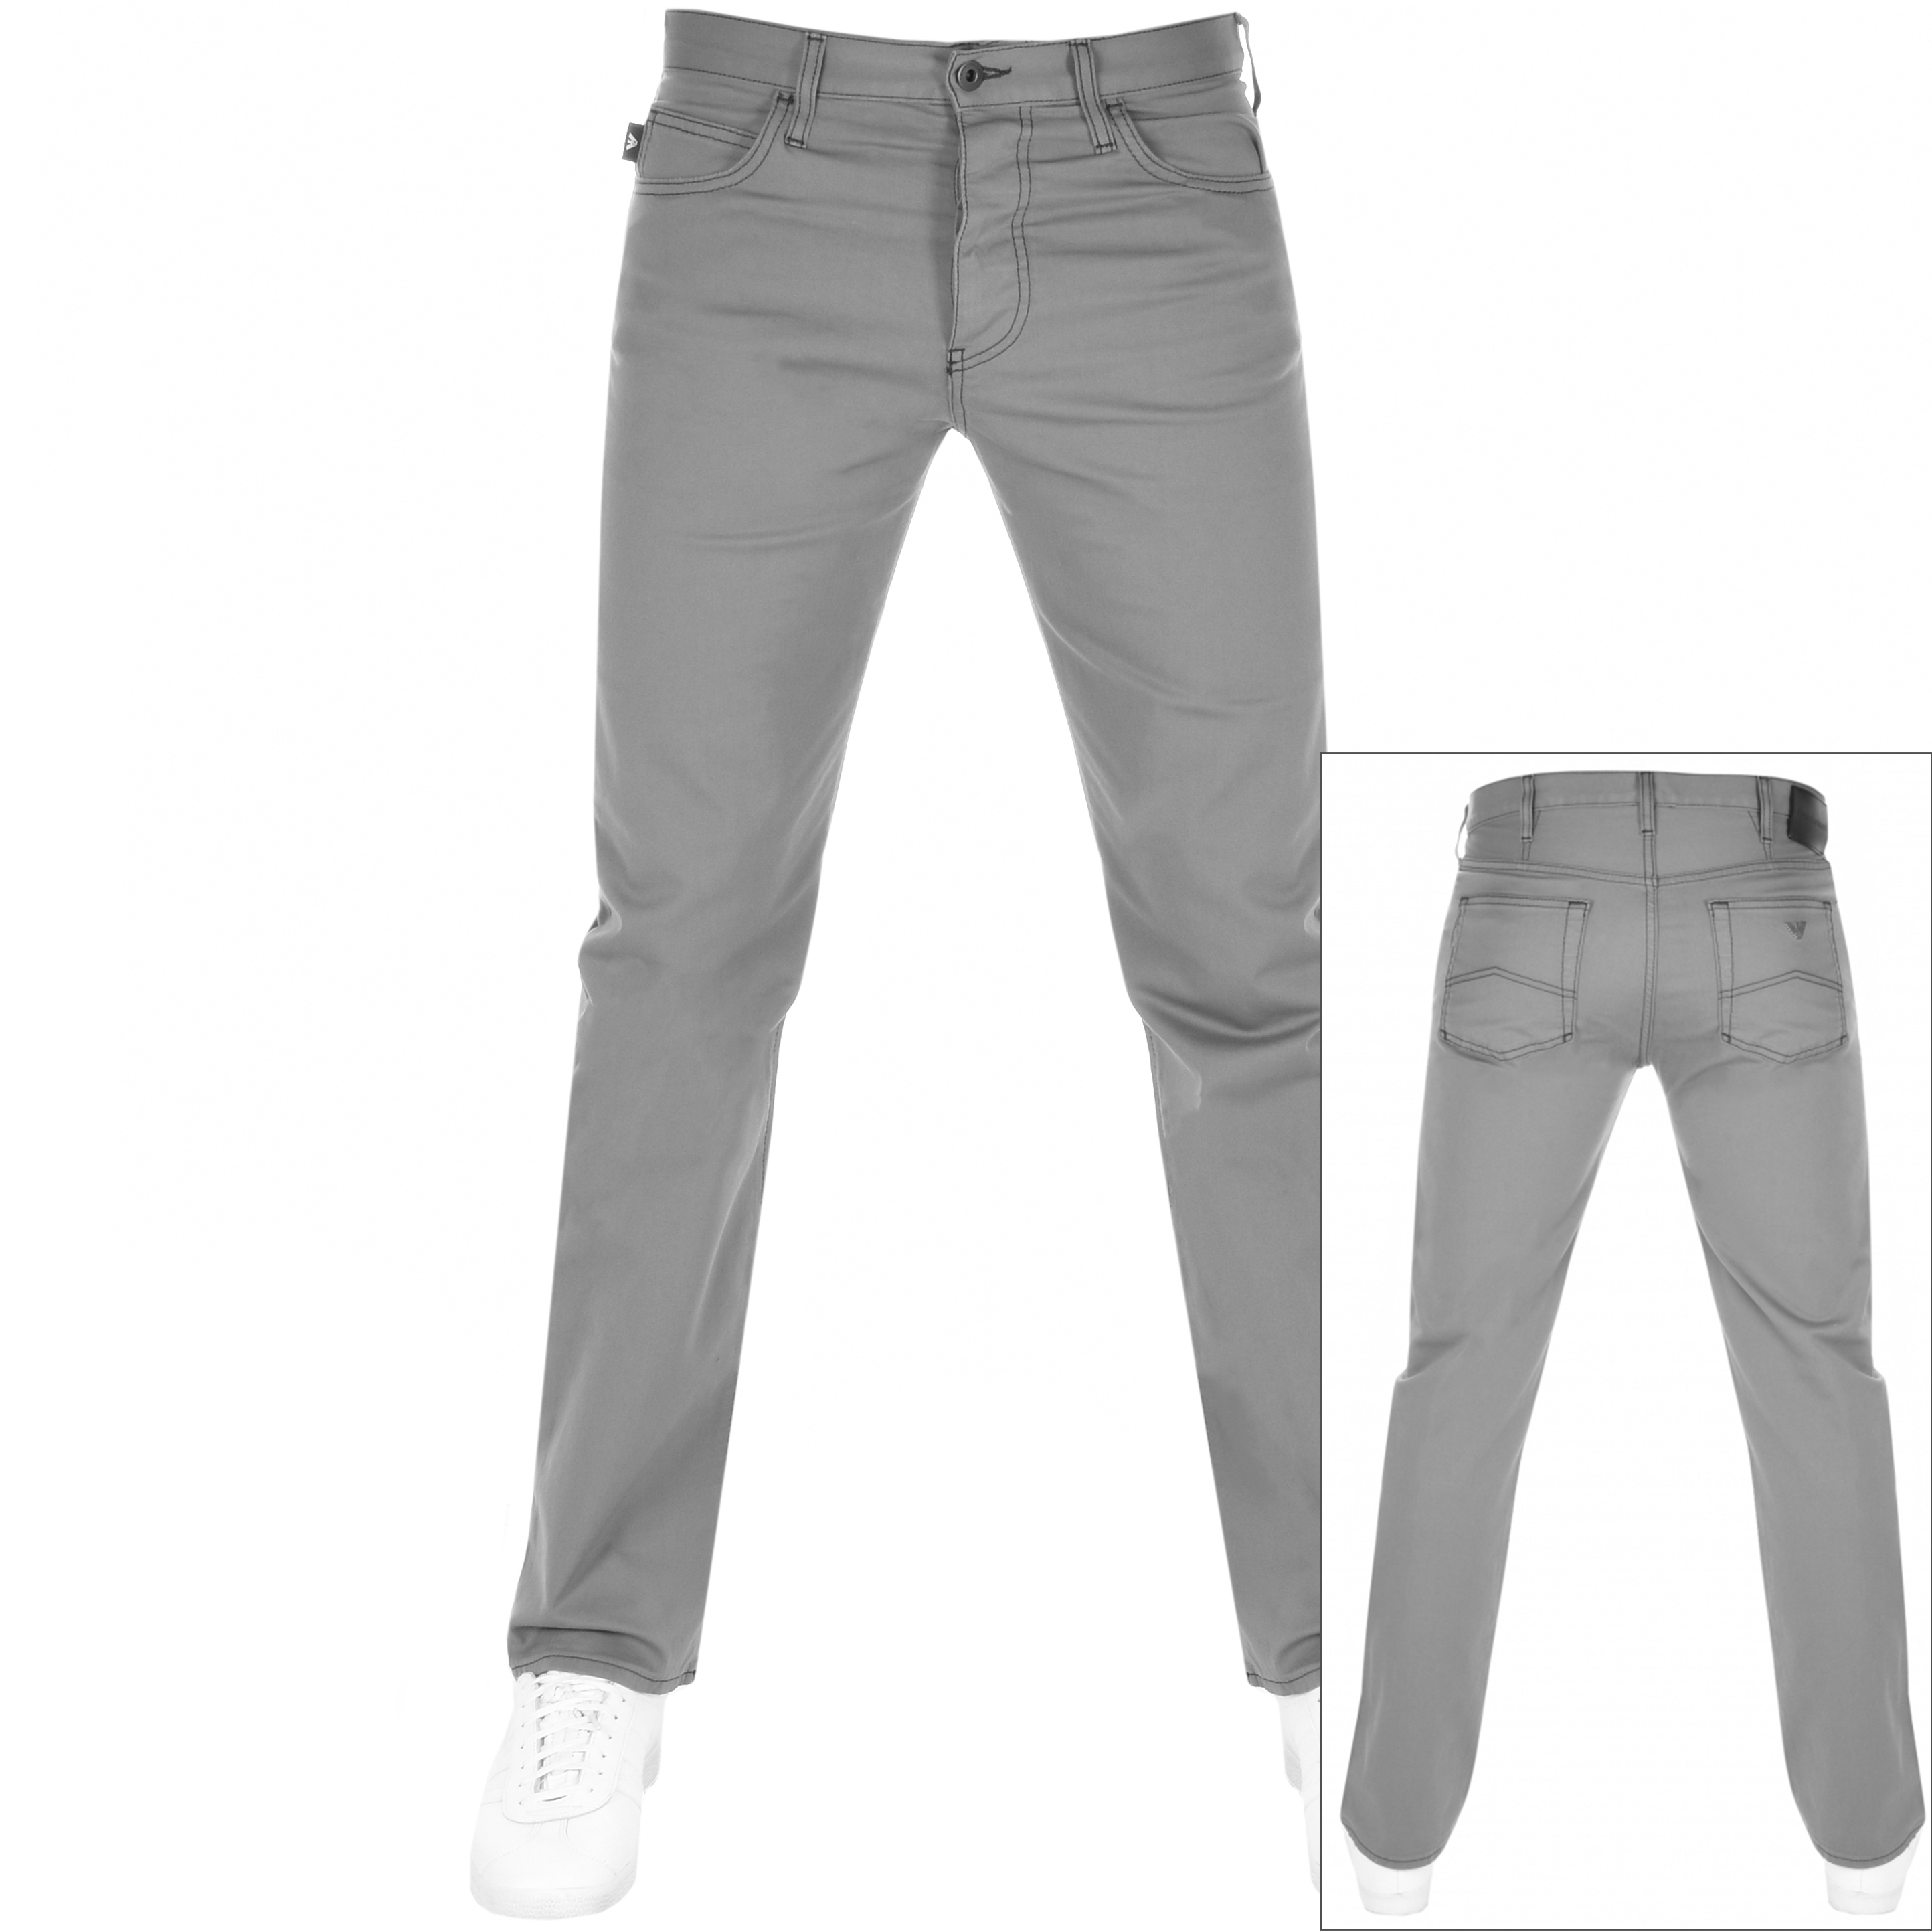 a9d23026 Product Image for Emporio Armani J21 Regular Fit Stretch Jeans Grey